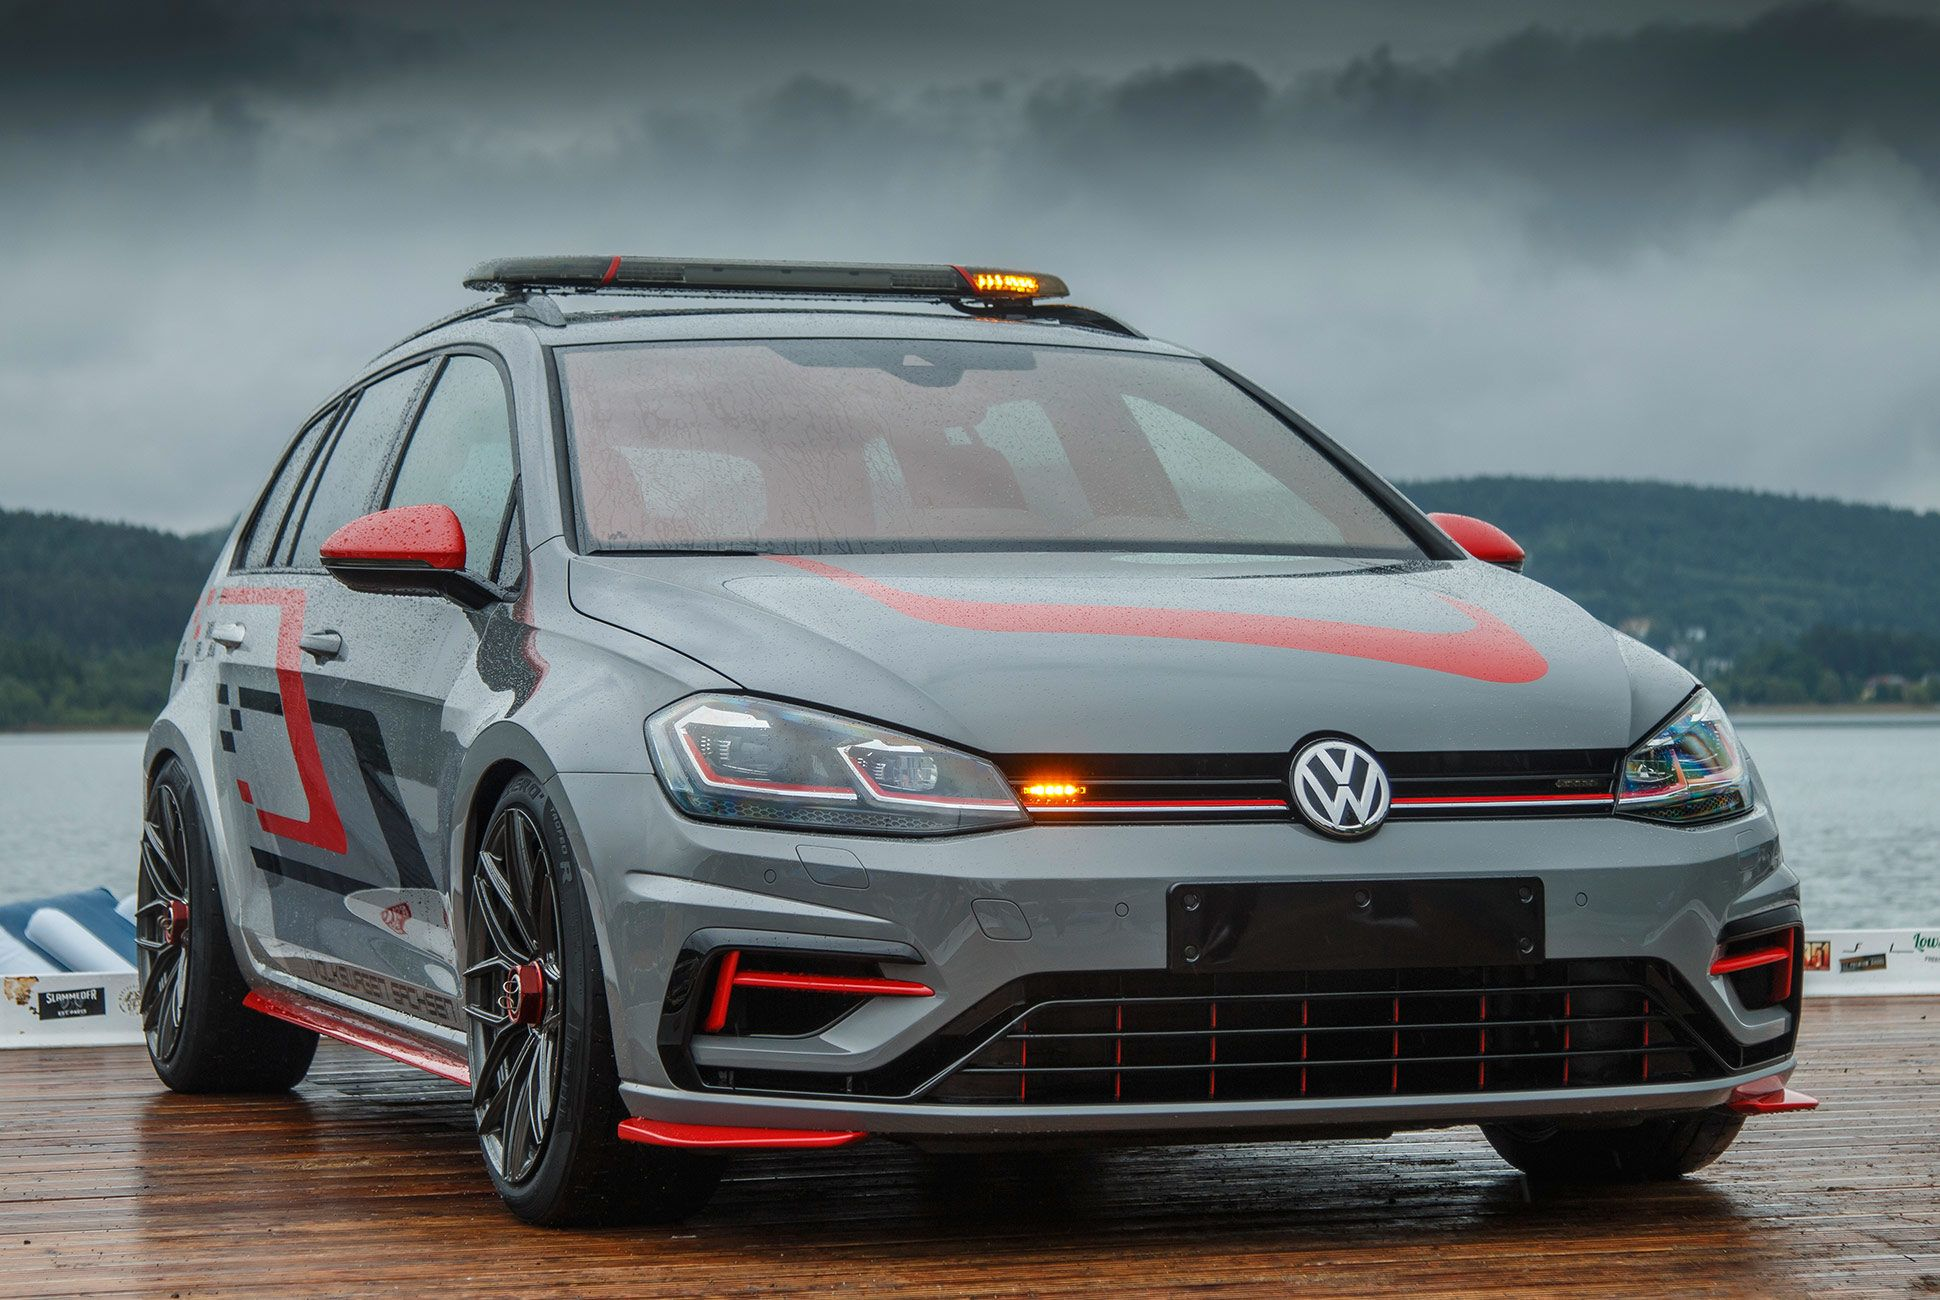 Vw S Insane Golf R Wagon And Gti Concepts Hide Serious Power Volkswagen Wagon Volkswagen Golf